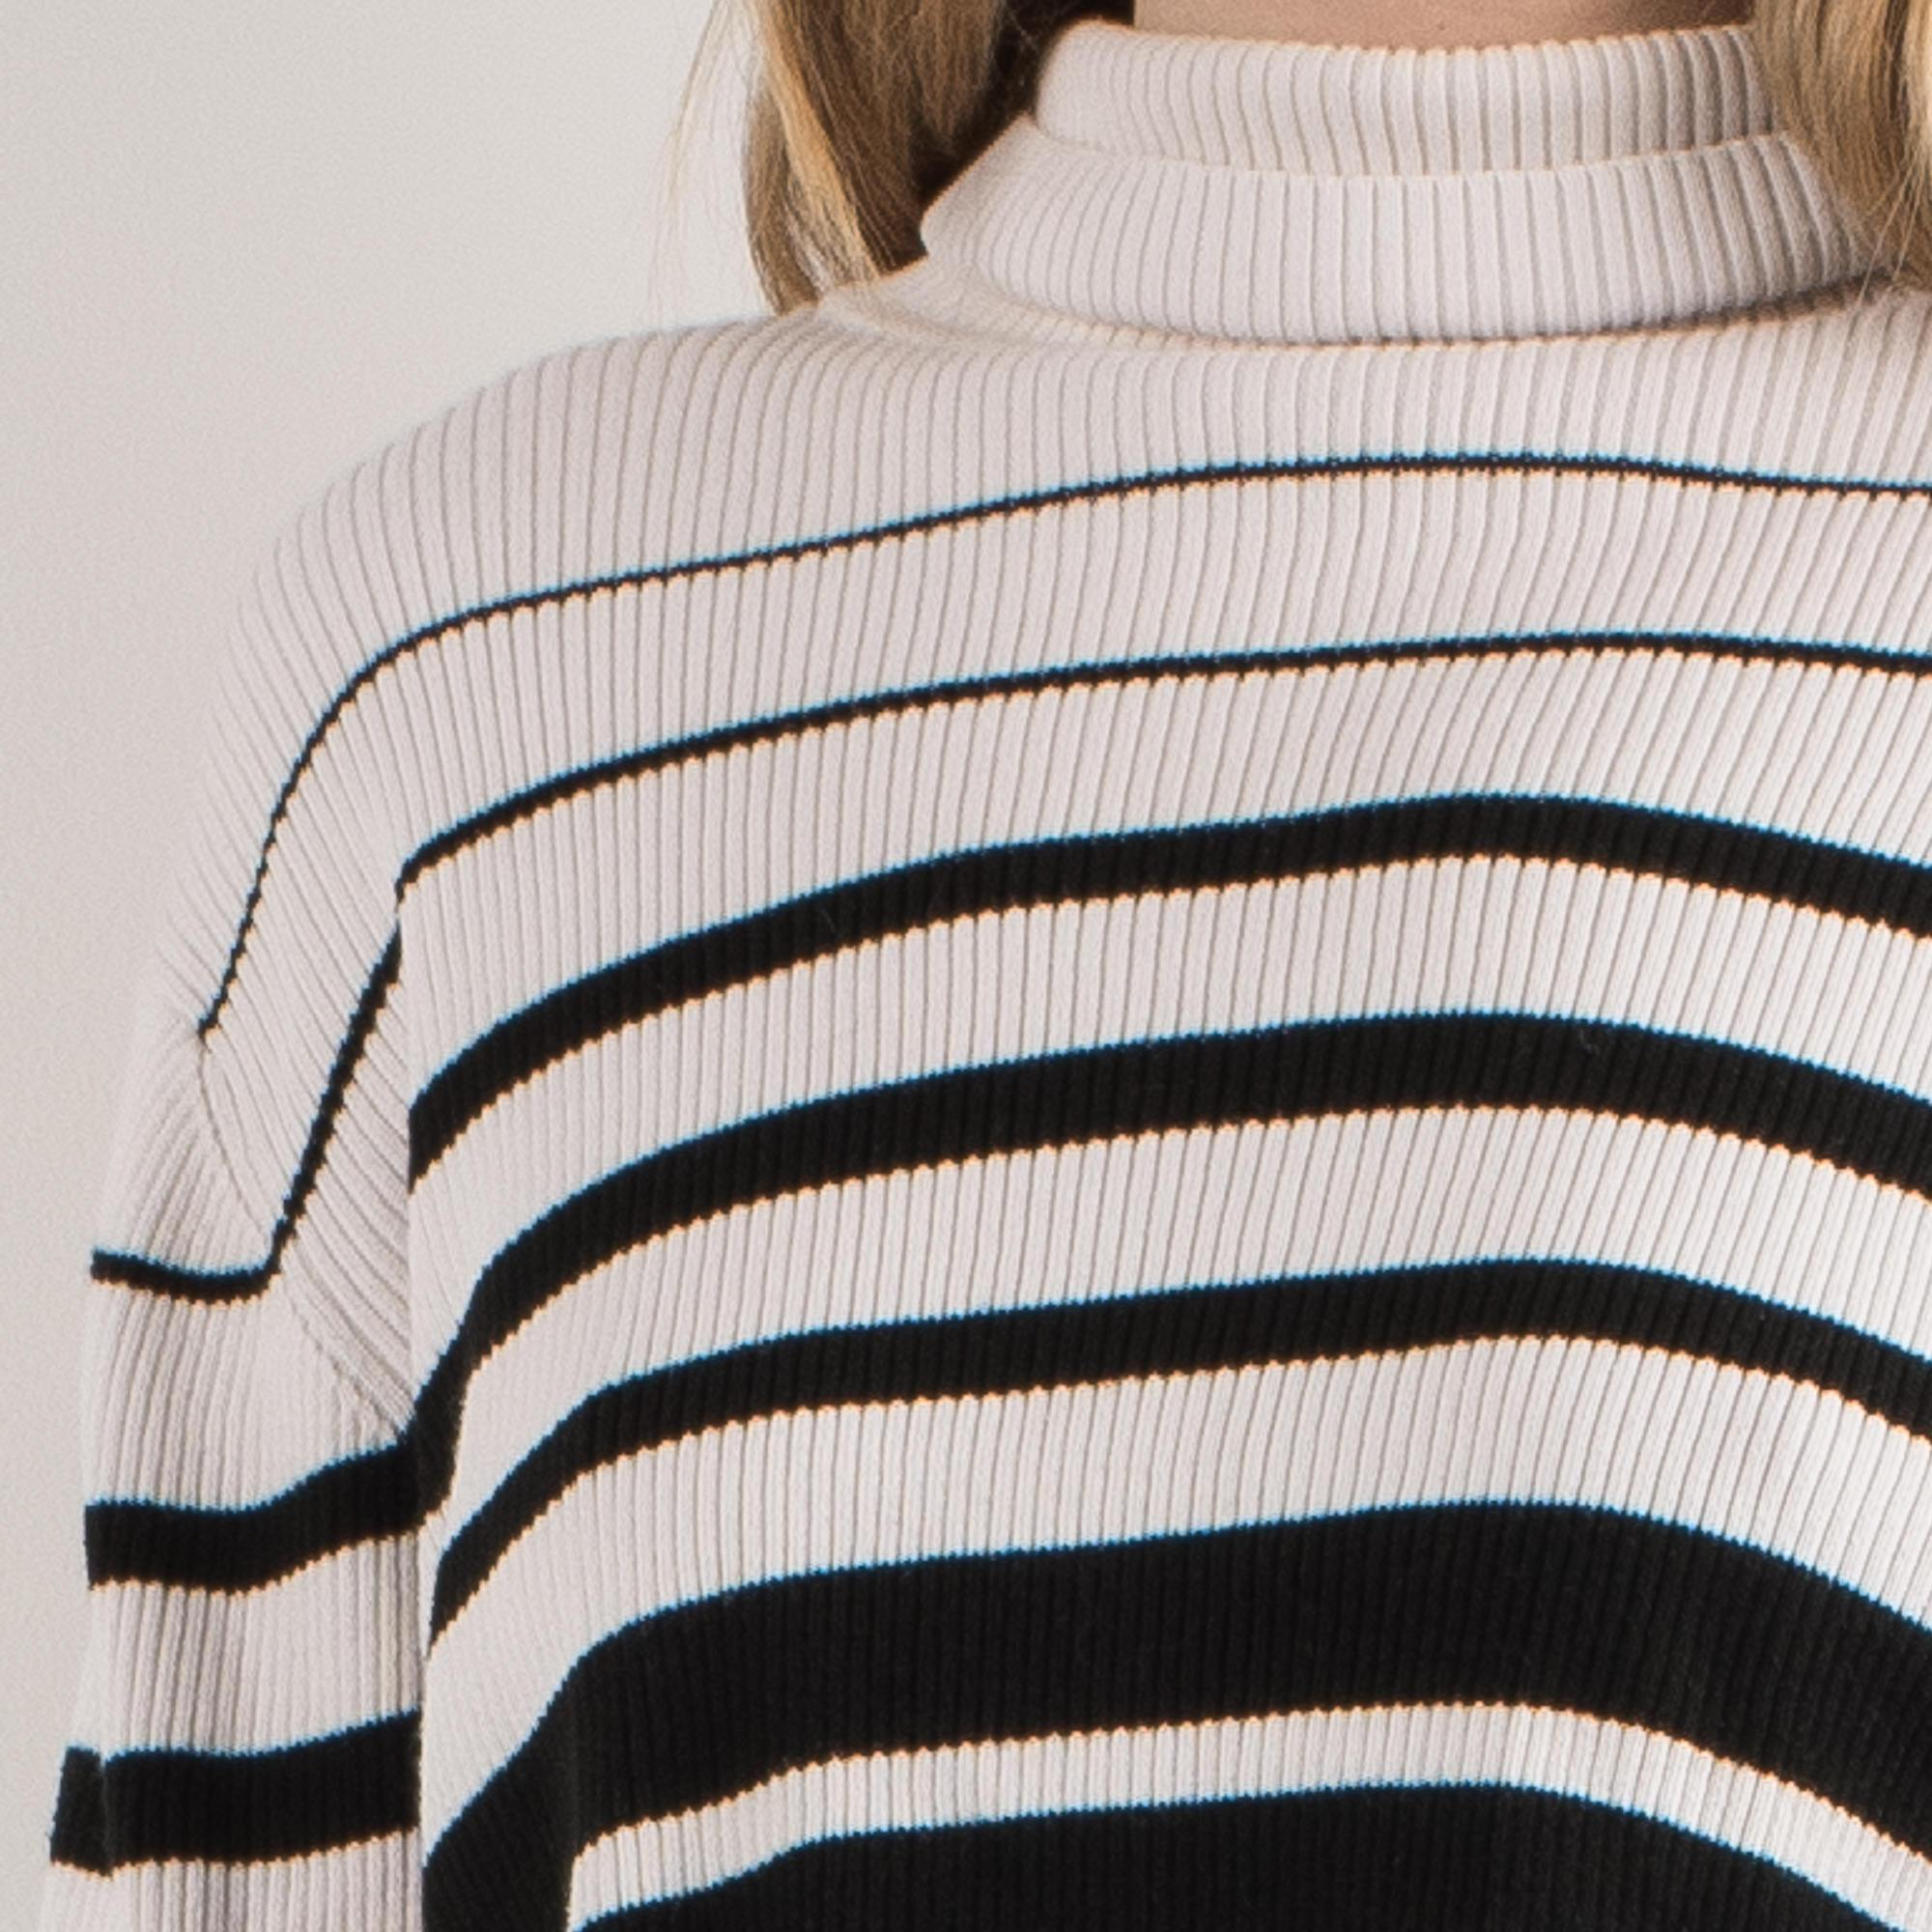 Vintage Creme and Black Striped Ribbed Knit Turtleneck Sweater / S - Closed Caption